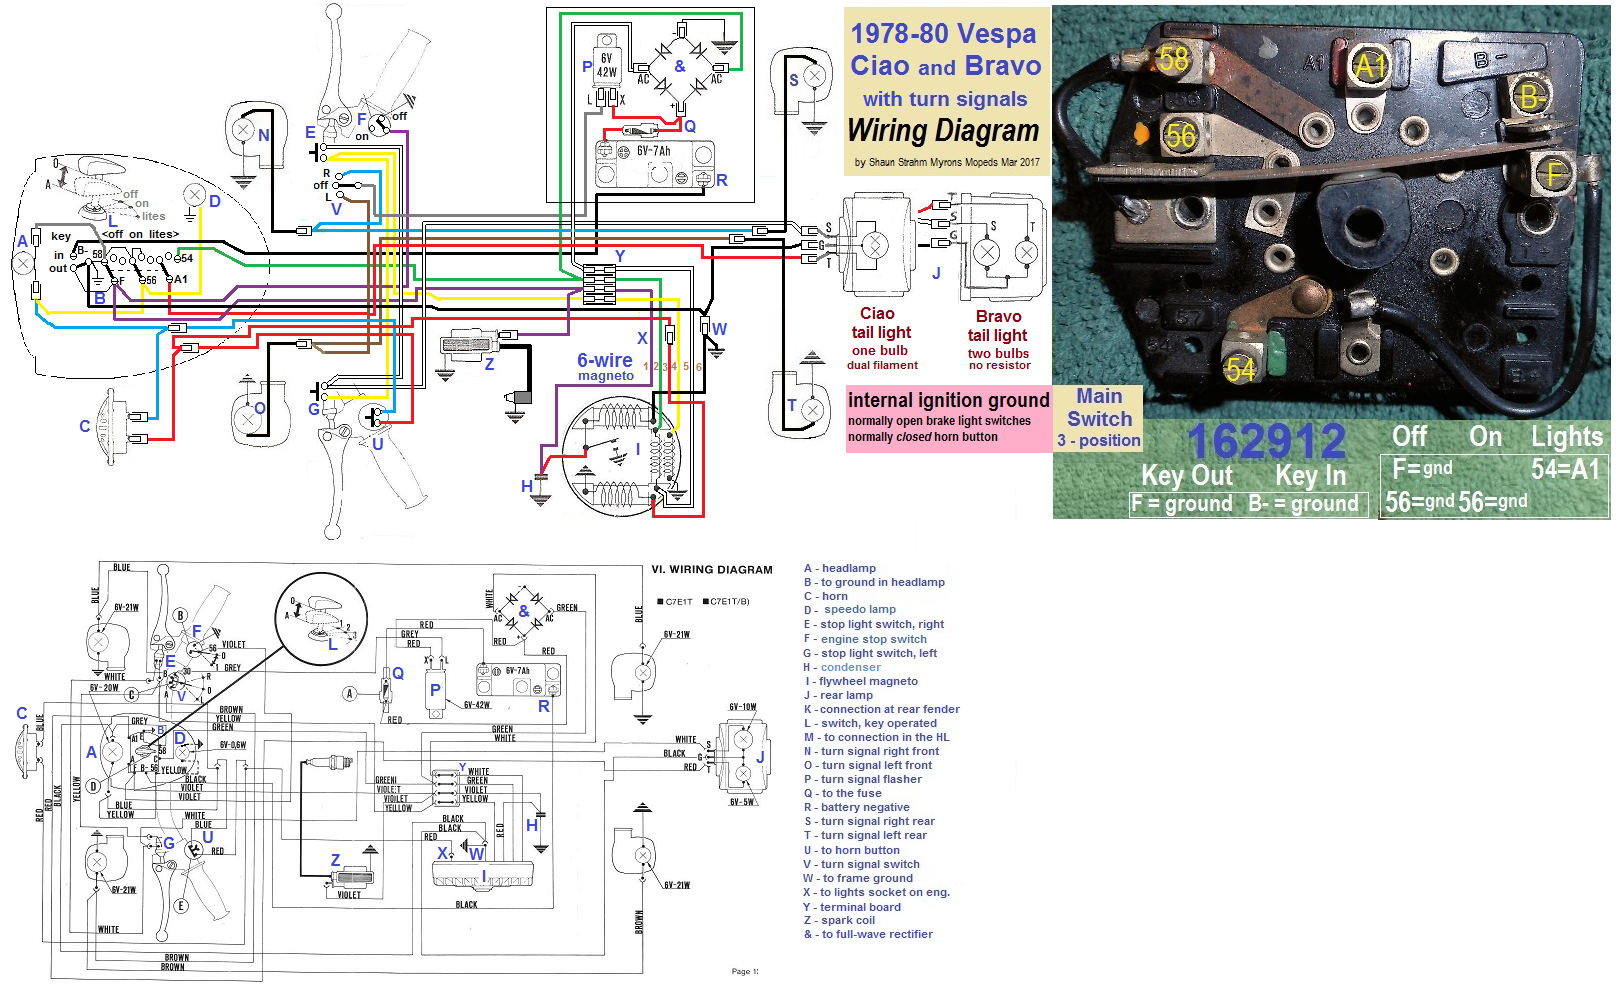 Vespa Bravo Moped Wiring Diagram Diagrams Scooter Turn Signal Electrical U00ab Myrons Mopeds 50cc 150cc